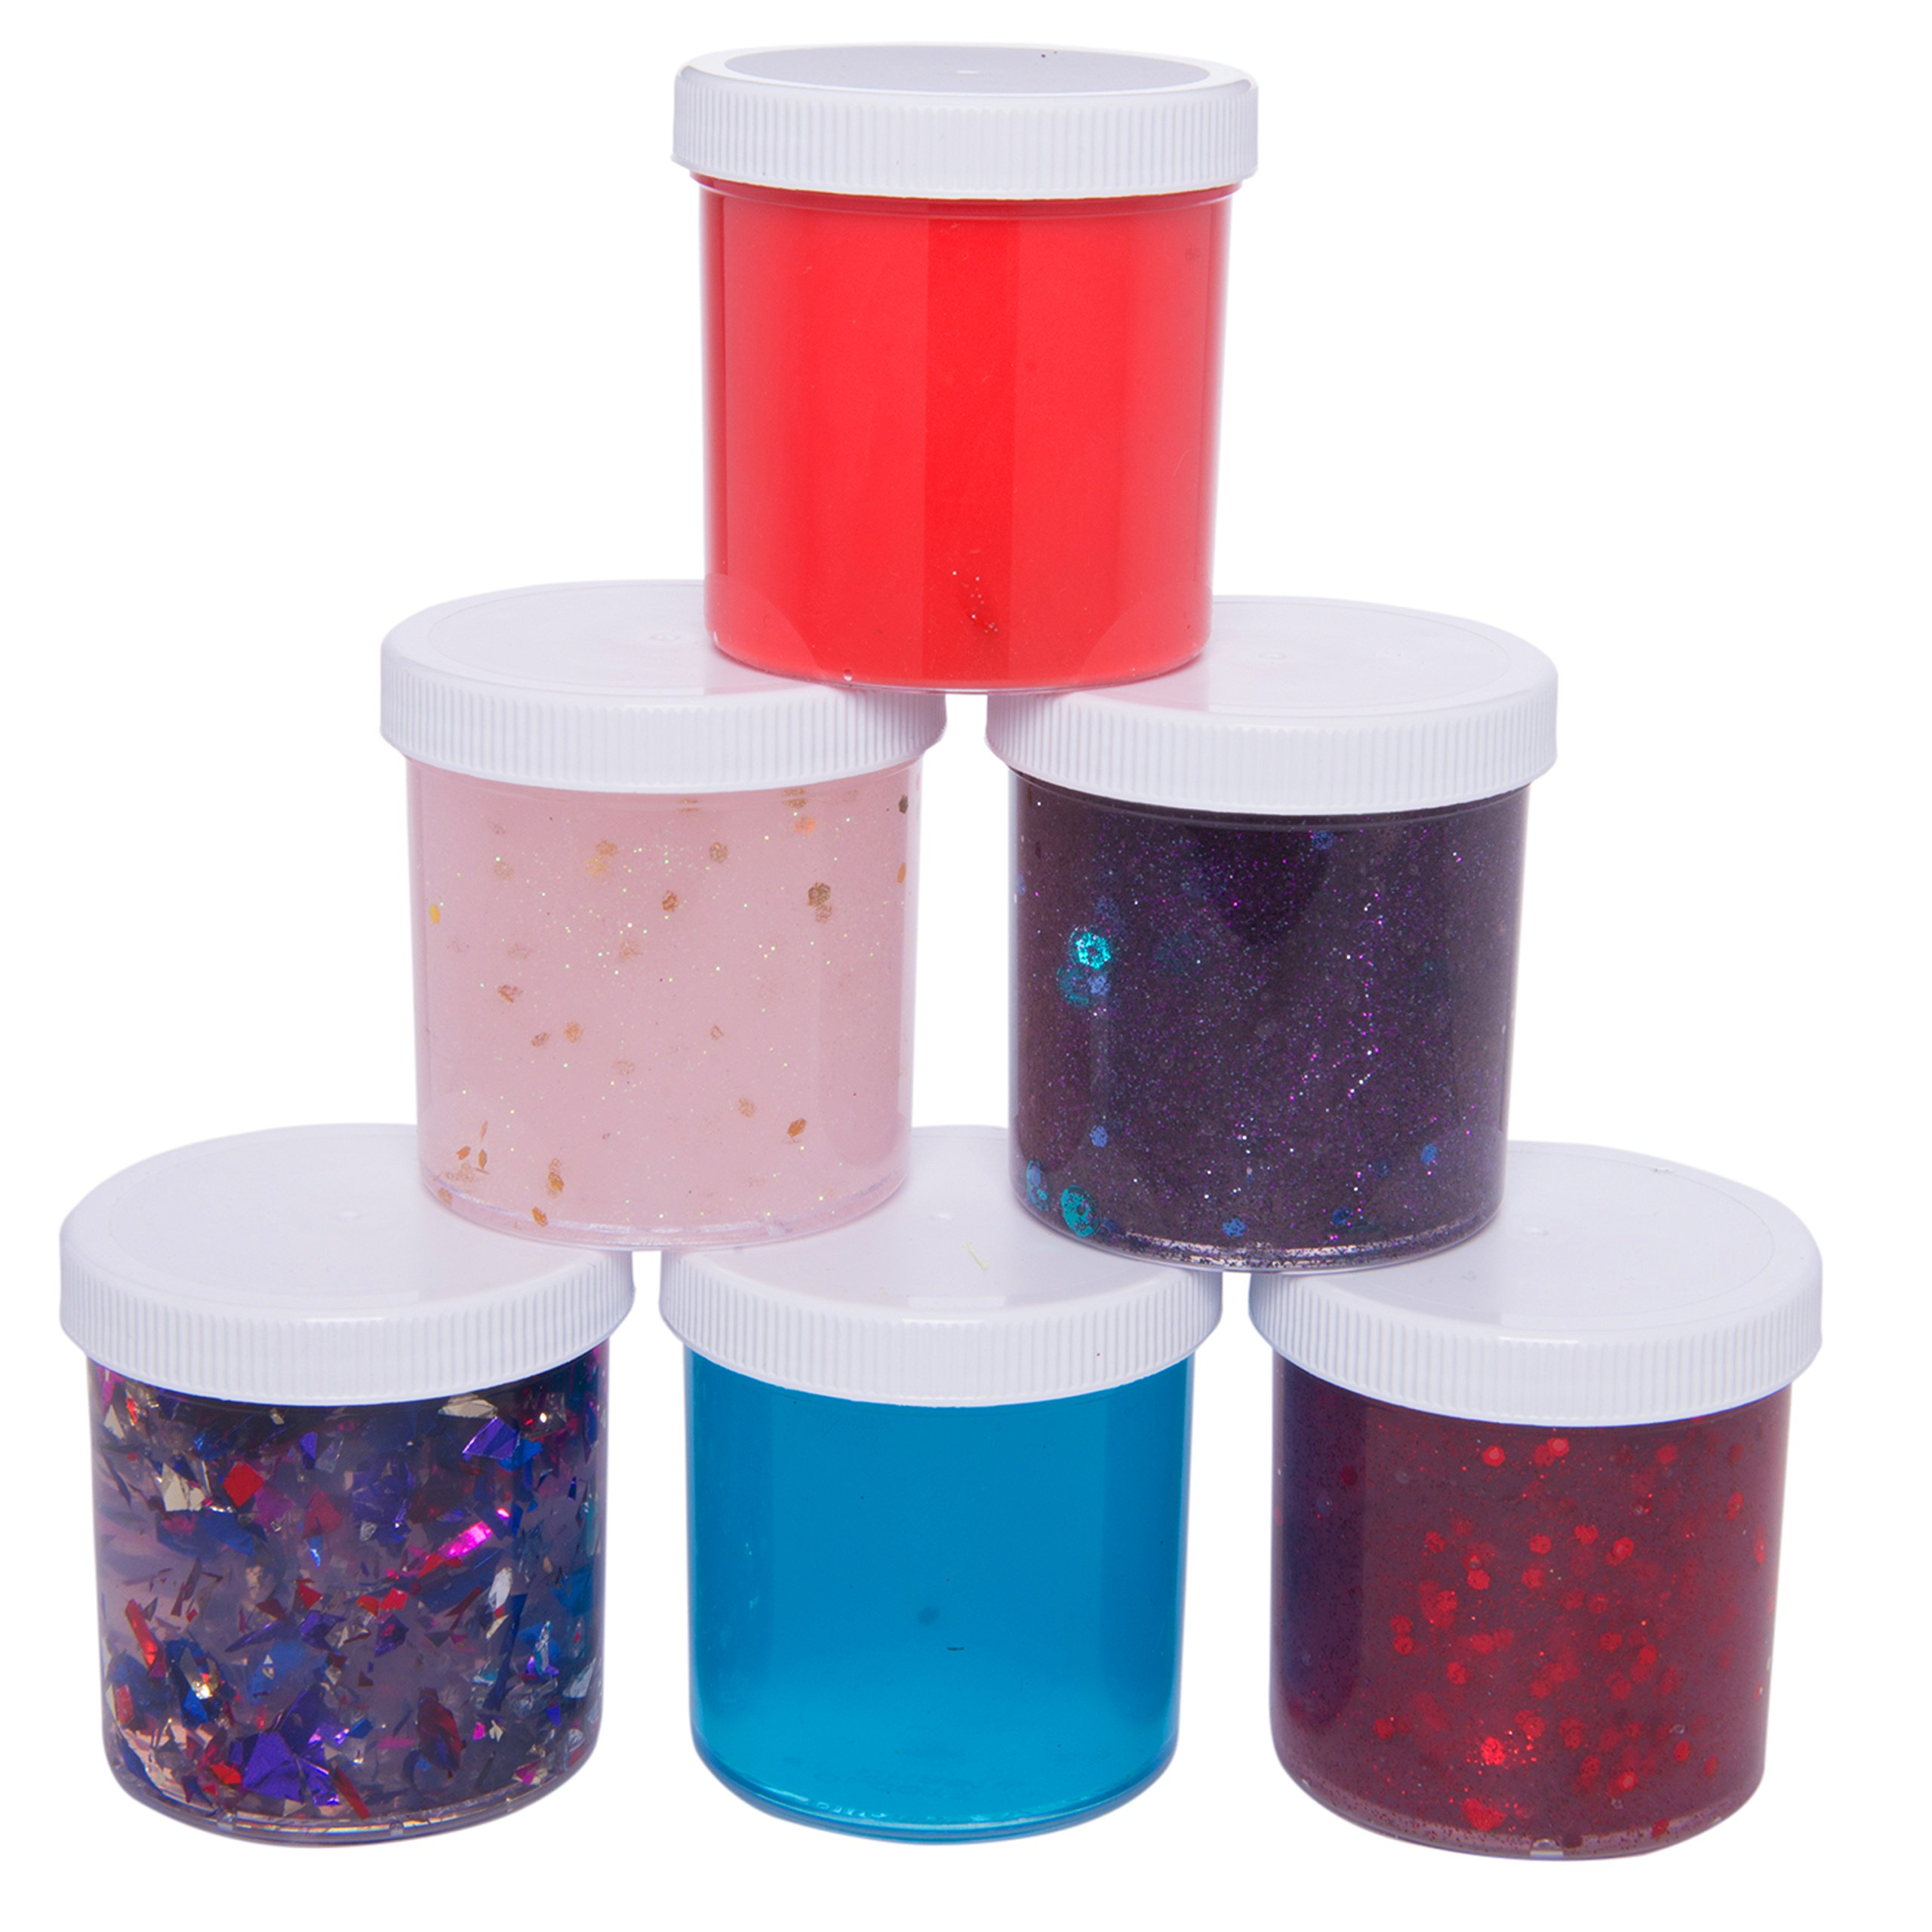 SCS Direct Slime Storage Jars 6oz (6 Pack) - Maddie Rae's Clear Containers For All Your Glue Putty Making